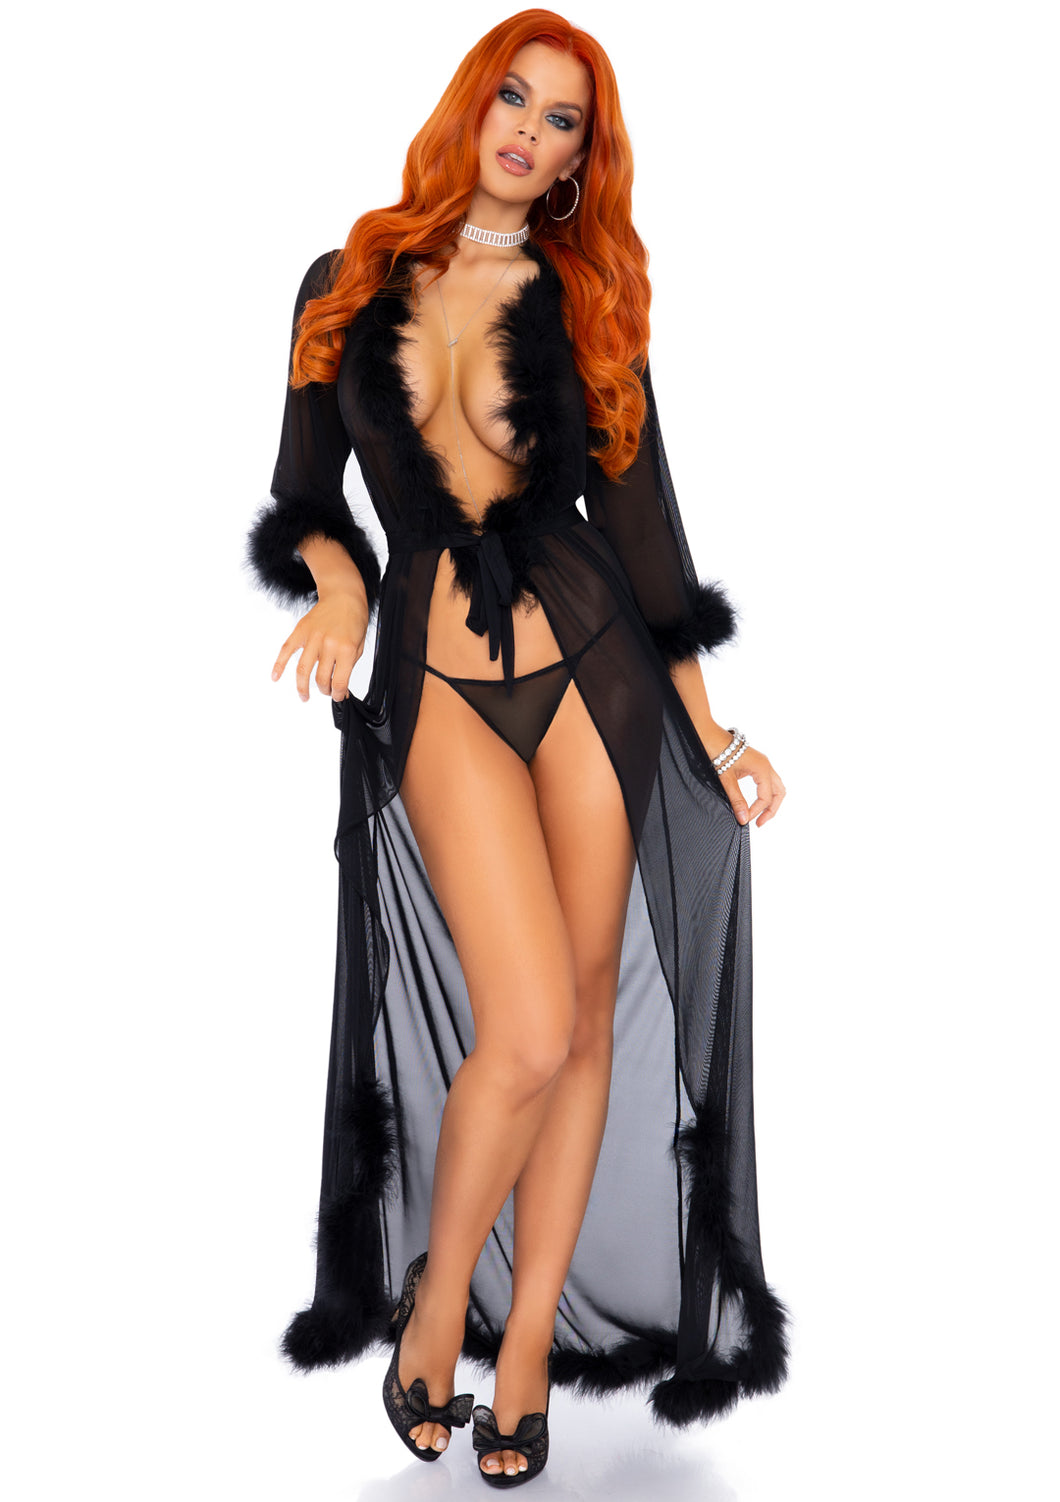 Black Adria 3 Piece Marabou Trimmed Long Sheer Robe and Tie and Matching G-String Panty